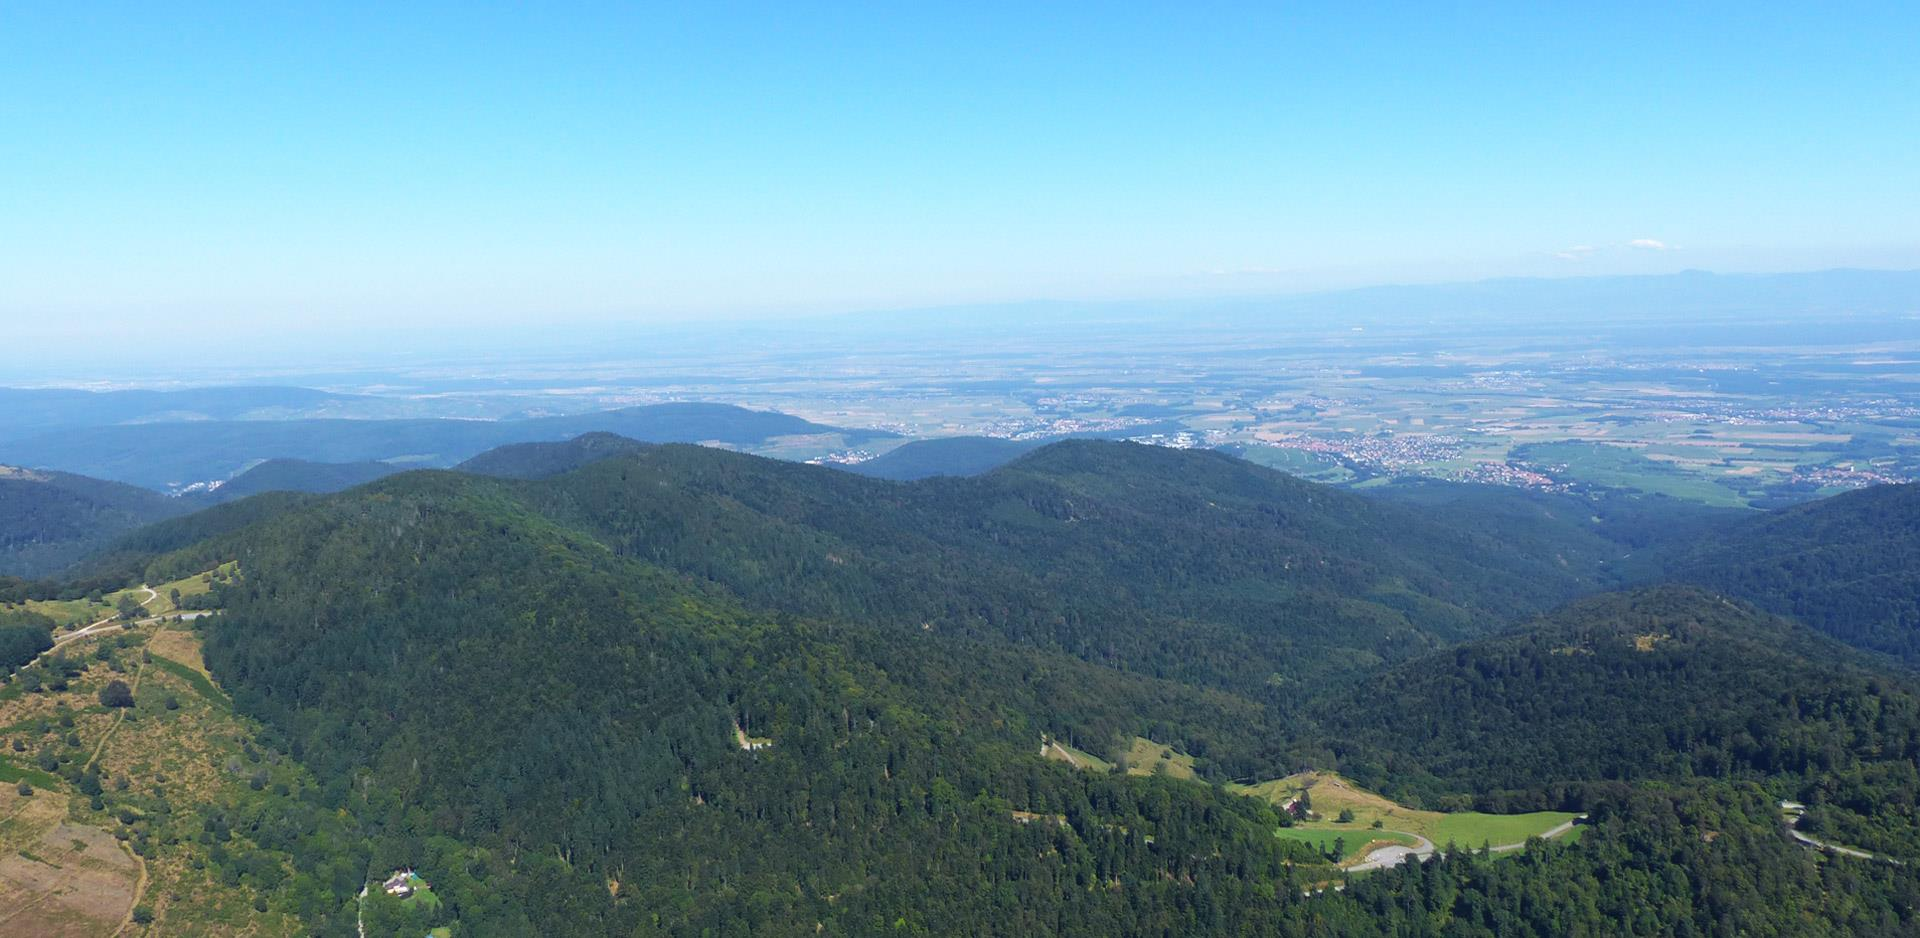 Bird's eye view of the Vosges Mountains